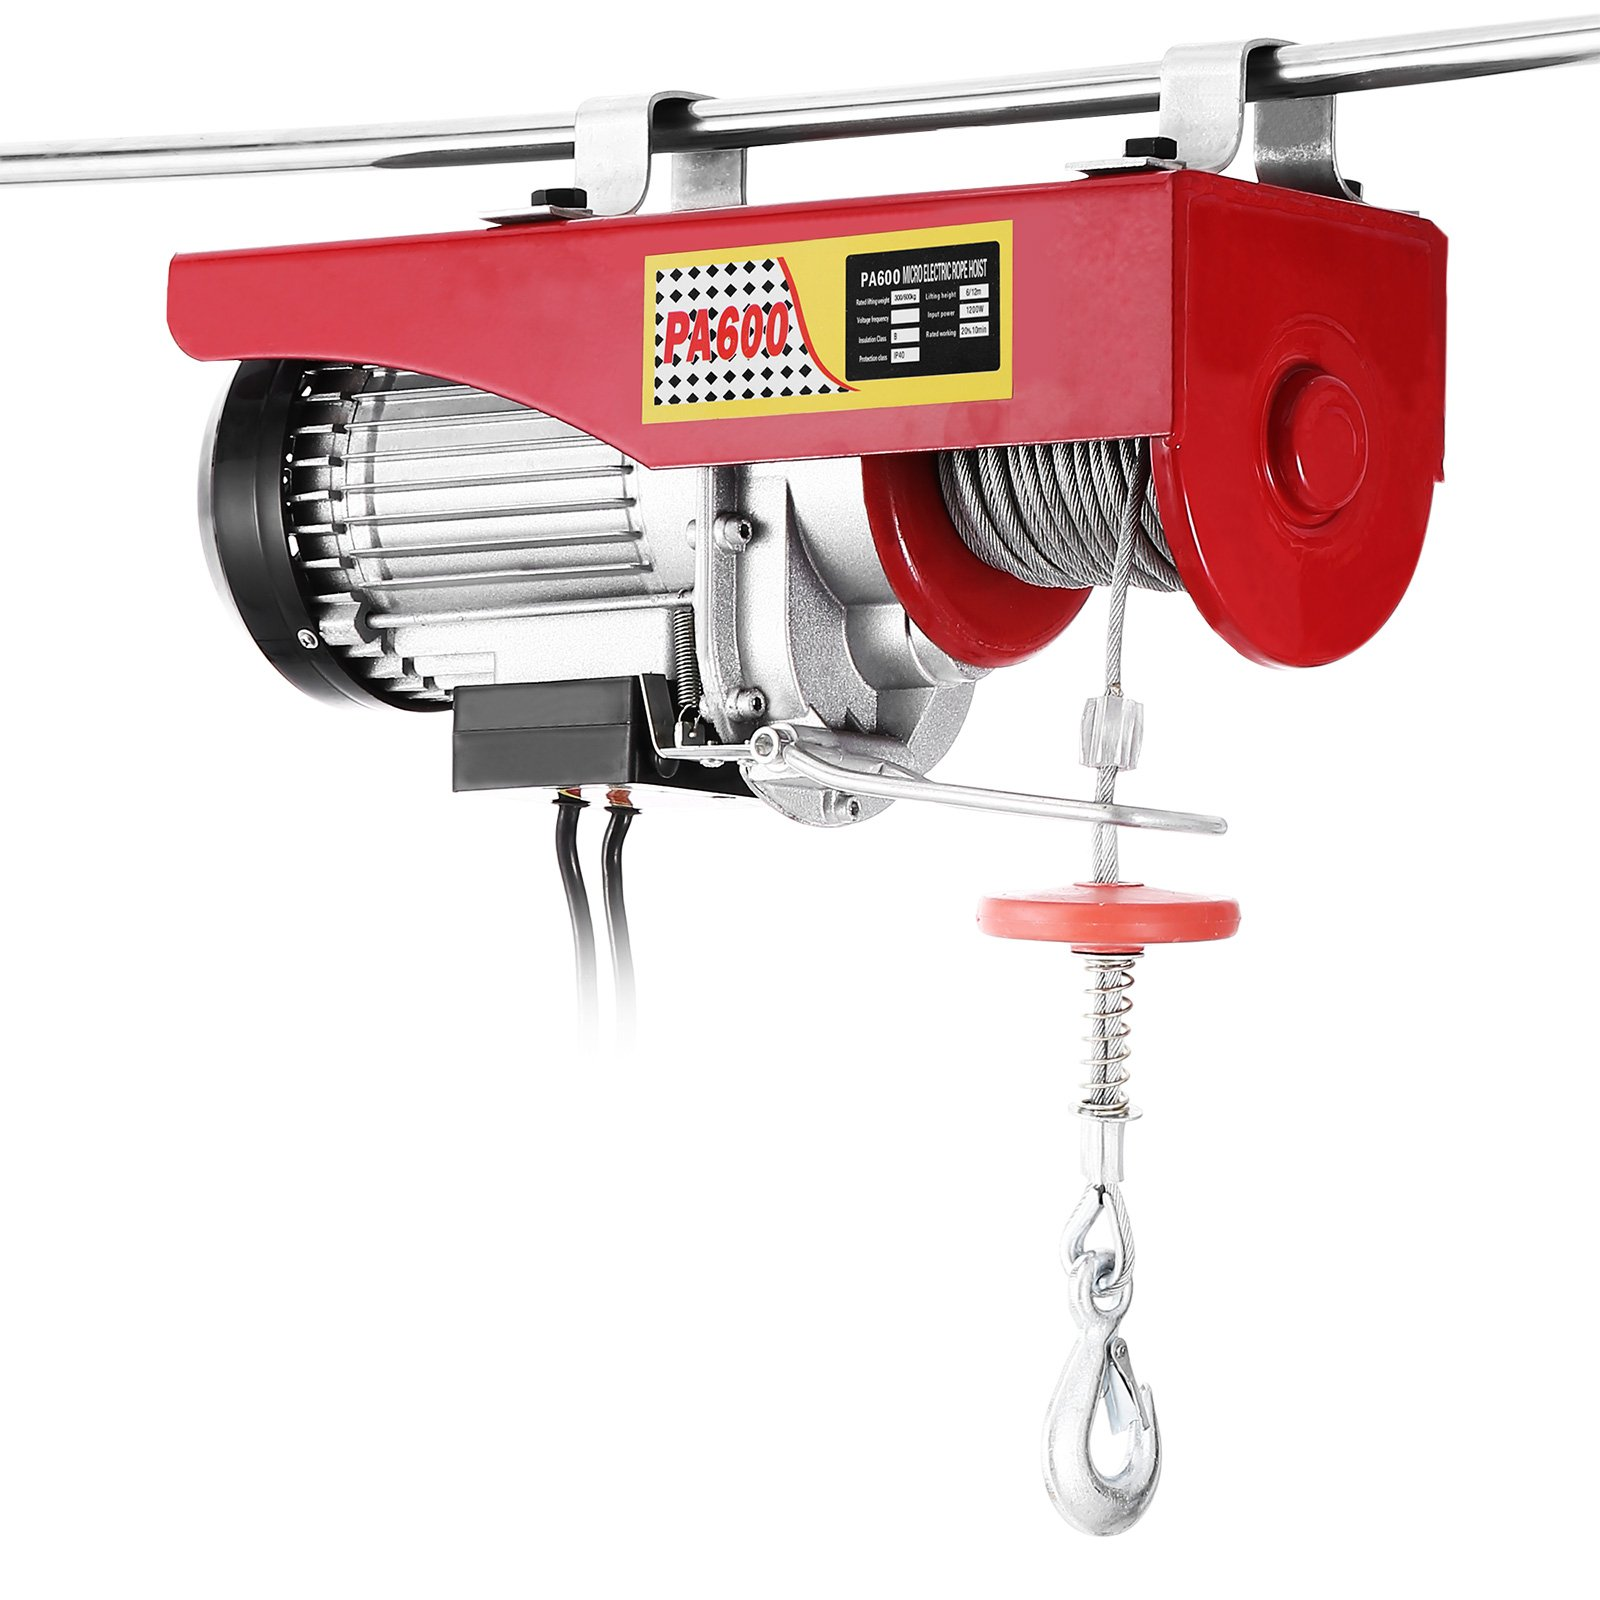 Cheap Auto Lift Hoist, find Auto Lift Hoist deals on line at ... on